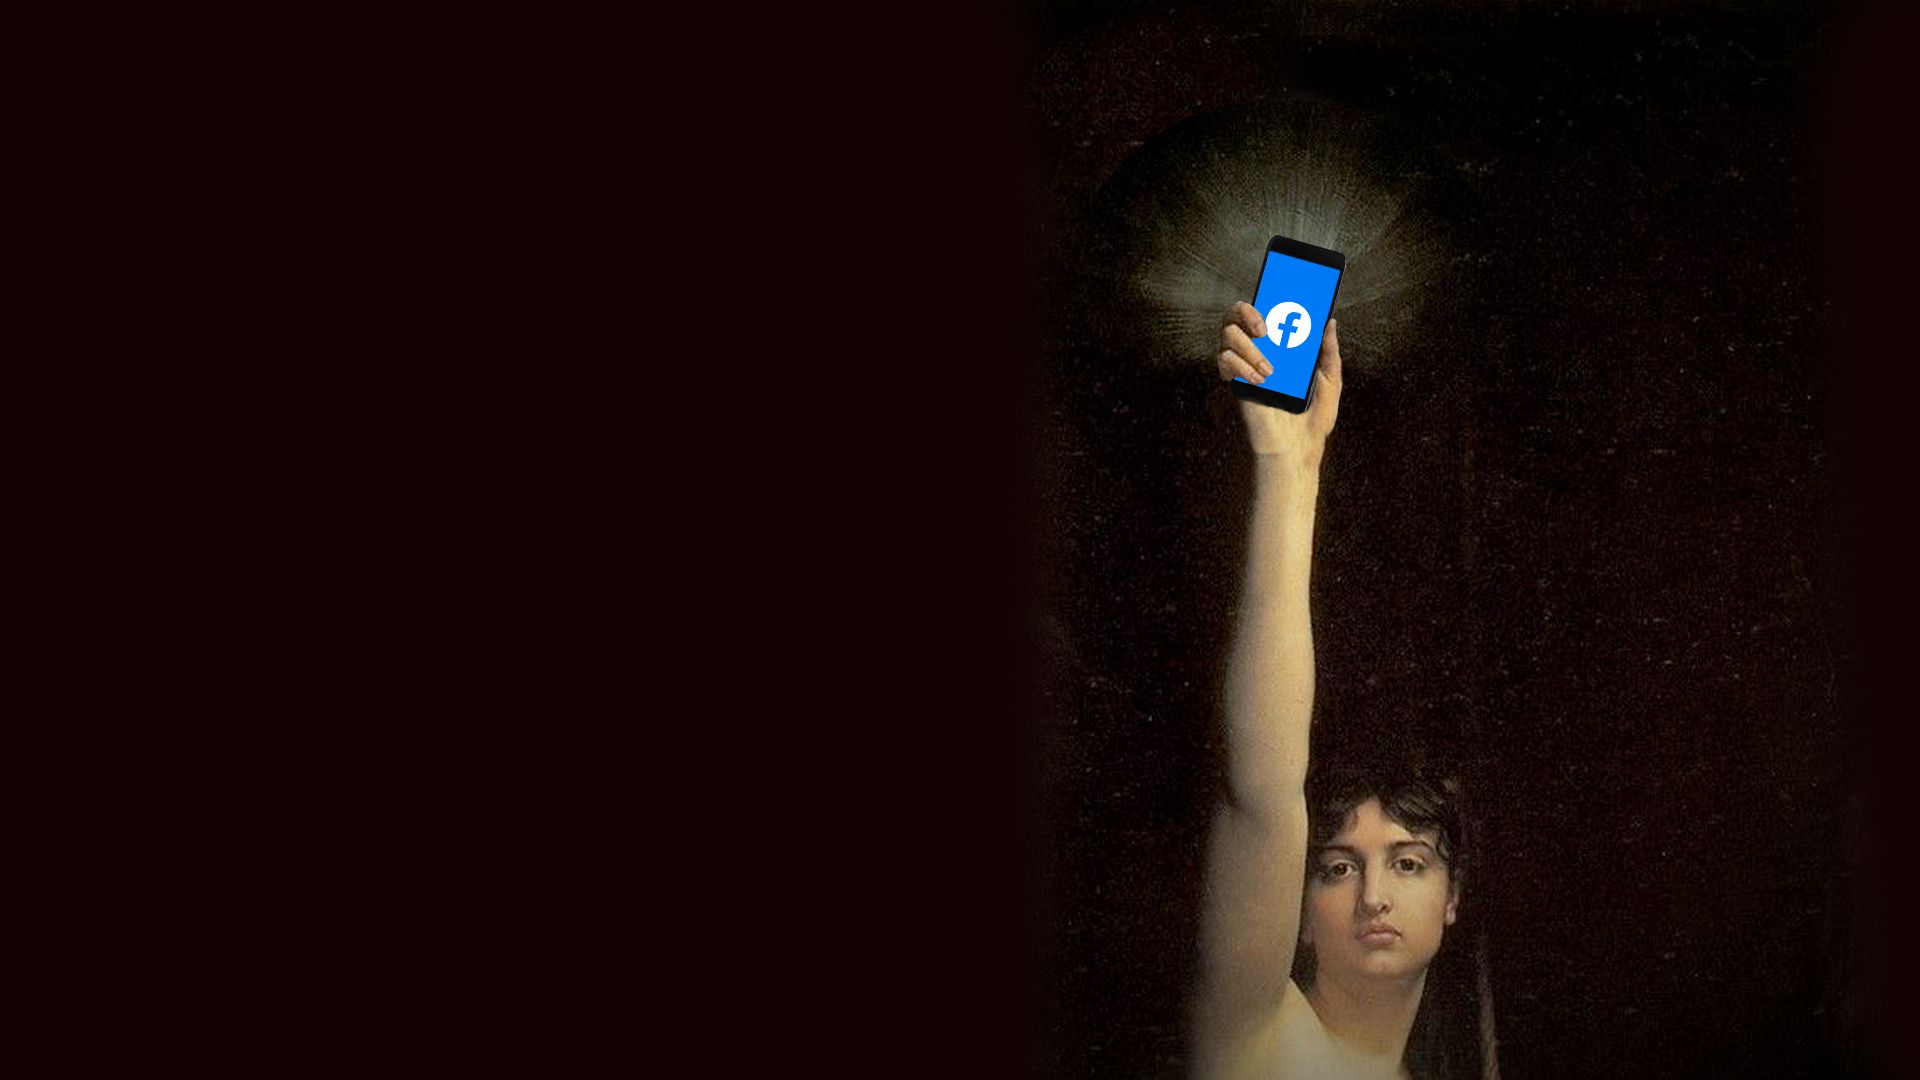 Illustration of La Verité by Jules Joseph Lefebvre holding a mobile phone with the Facebook logo in place of her mirror